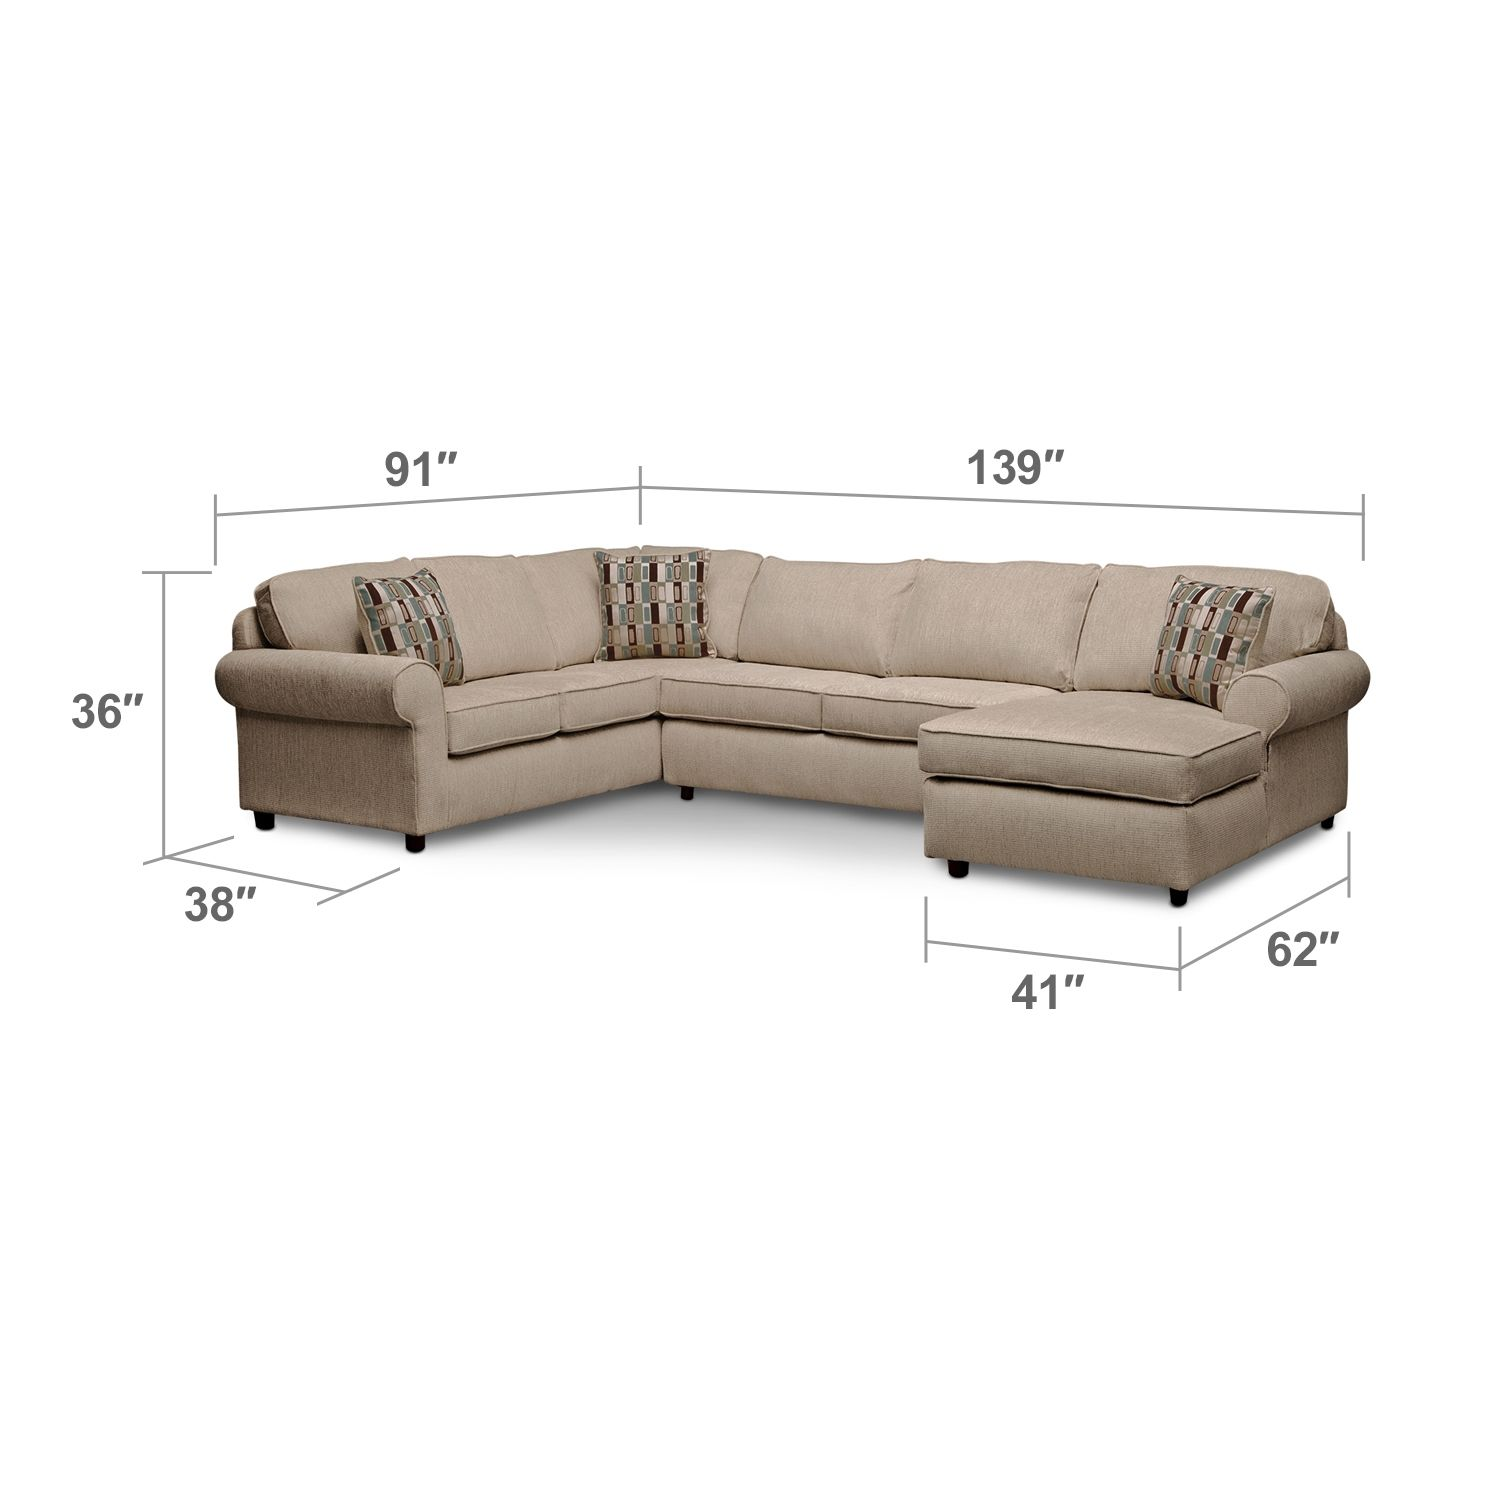 Living room furniture cordoba 2 pc sectional - Room Monarch Ii 3 Piece Sectional American Signature Furniture